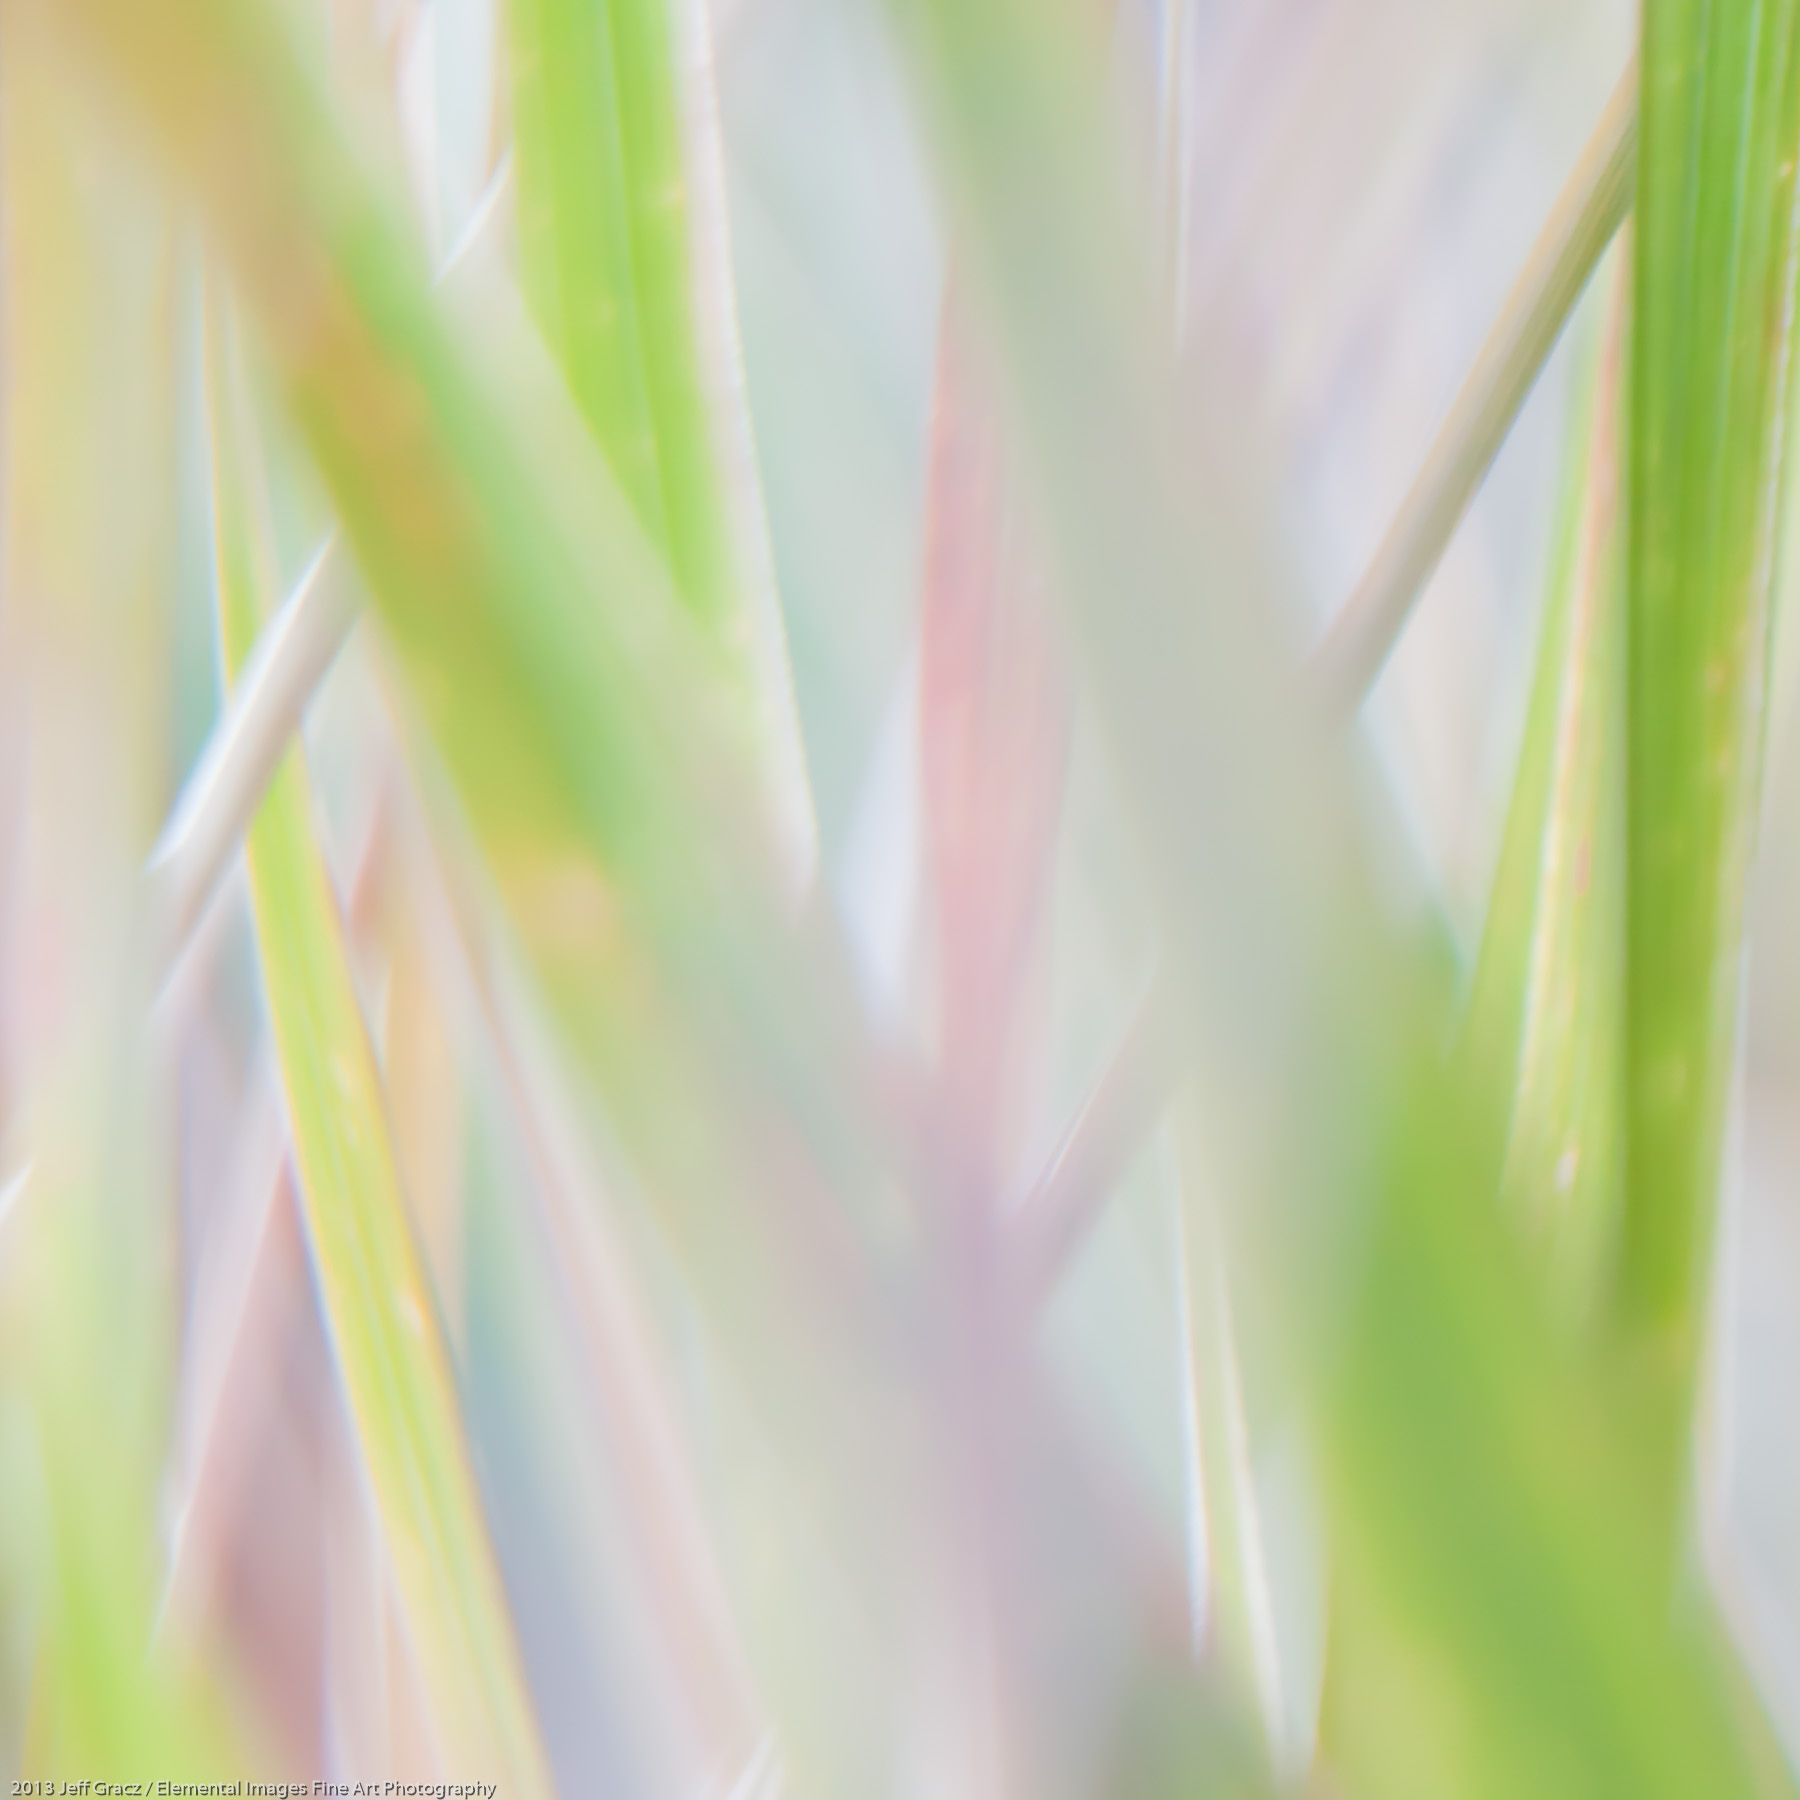 Grasses XLV | Portland | OR | USA - © 2013 Jeff Gracz / Elemental Images Fine Art Photography - All Rights Reserved Worldwide